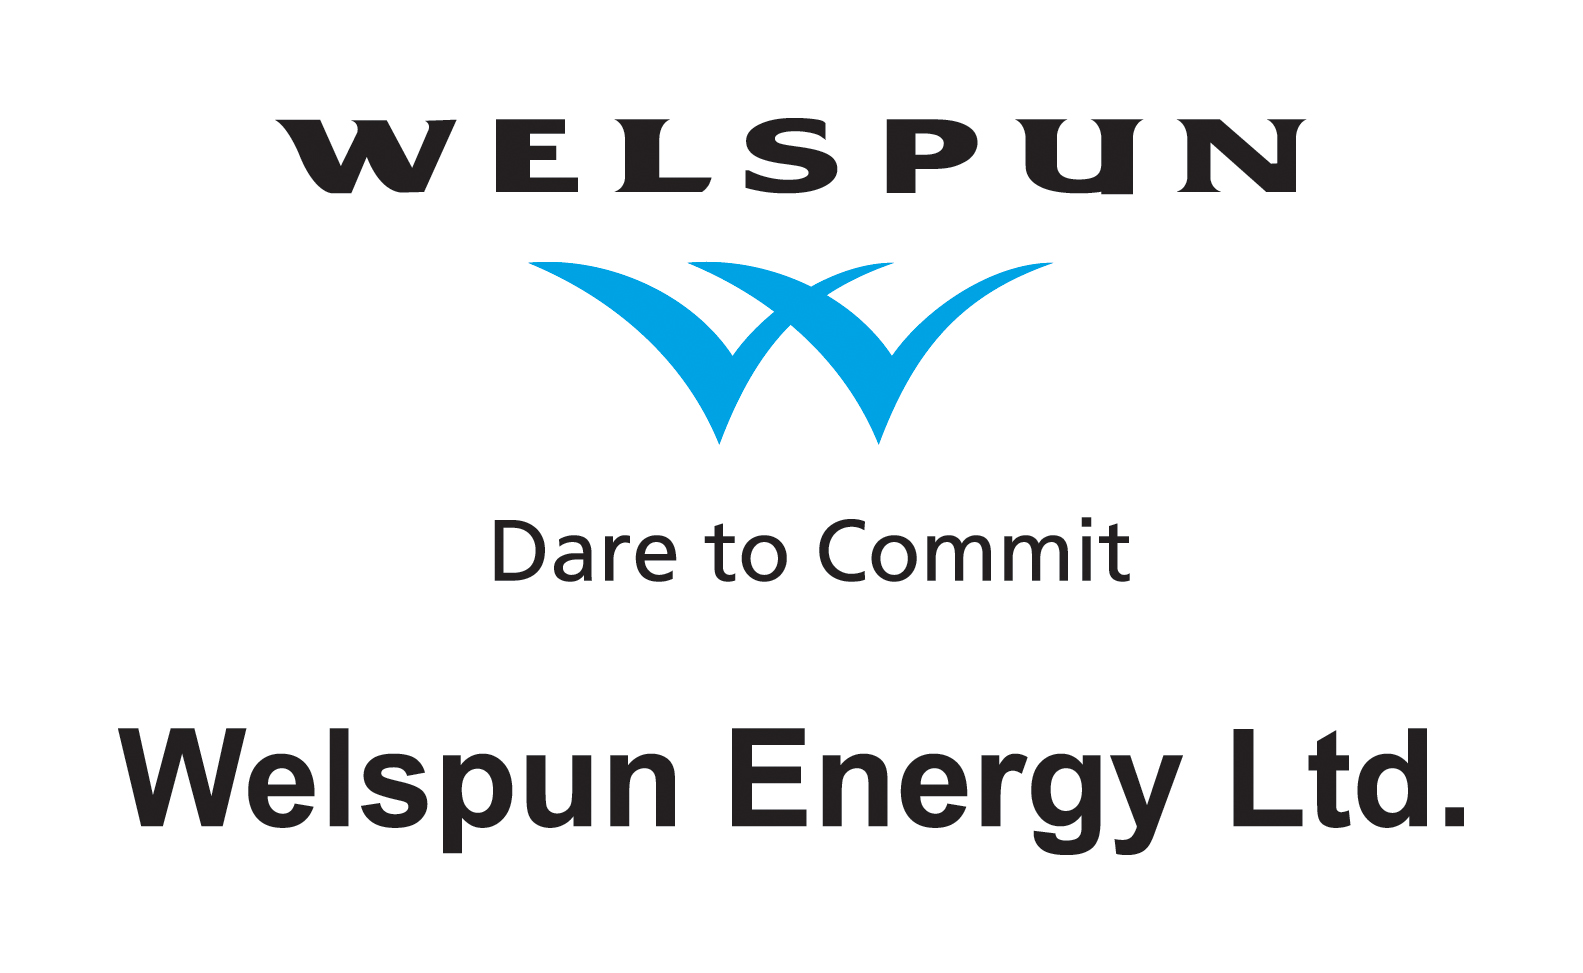 welspun receives go ahead for it u0026 39 s 60mw solar project in